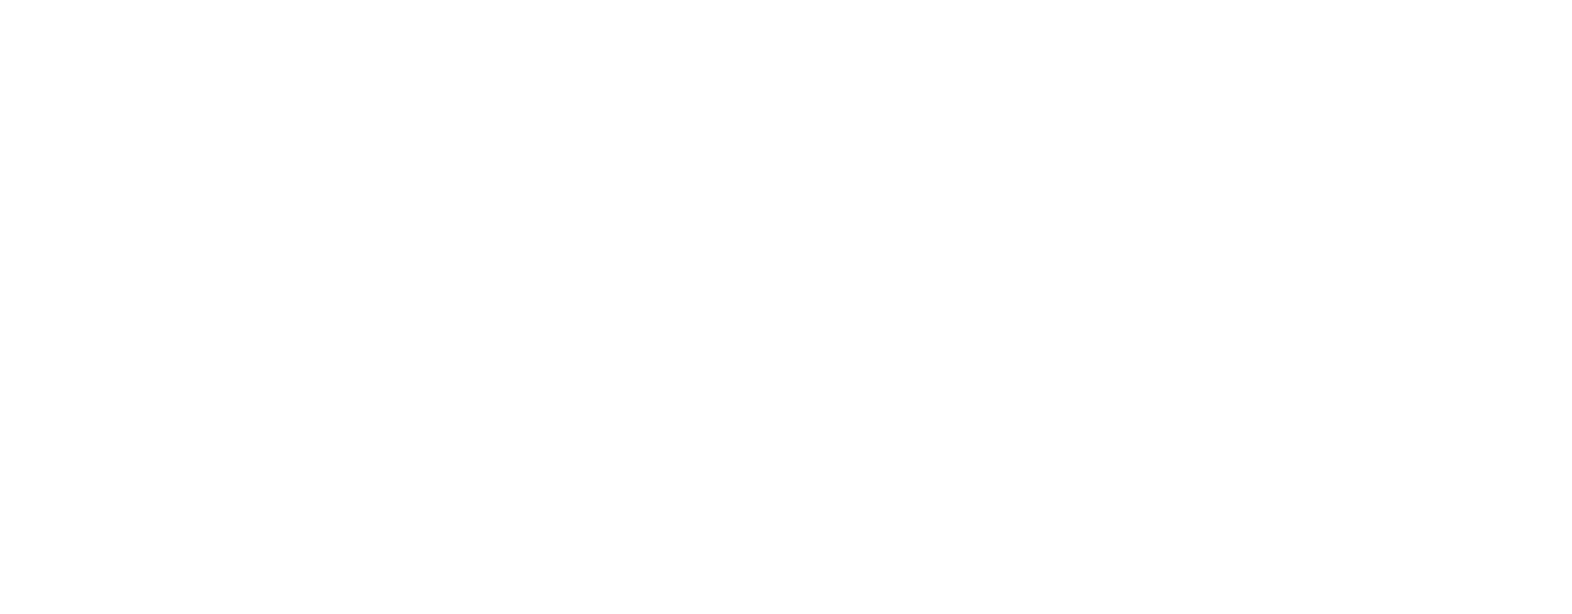 Midwest Physical Therapy Logo